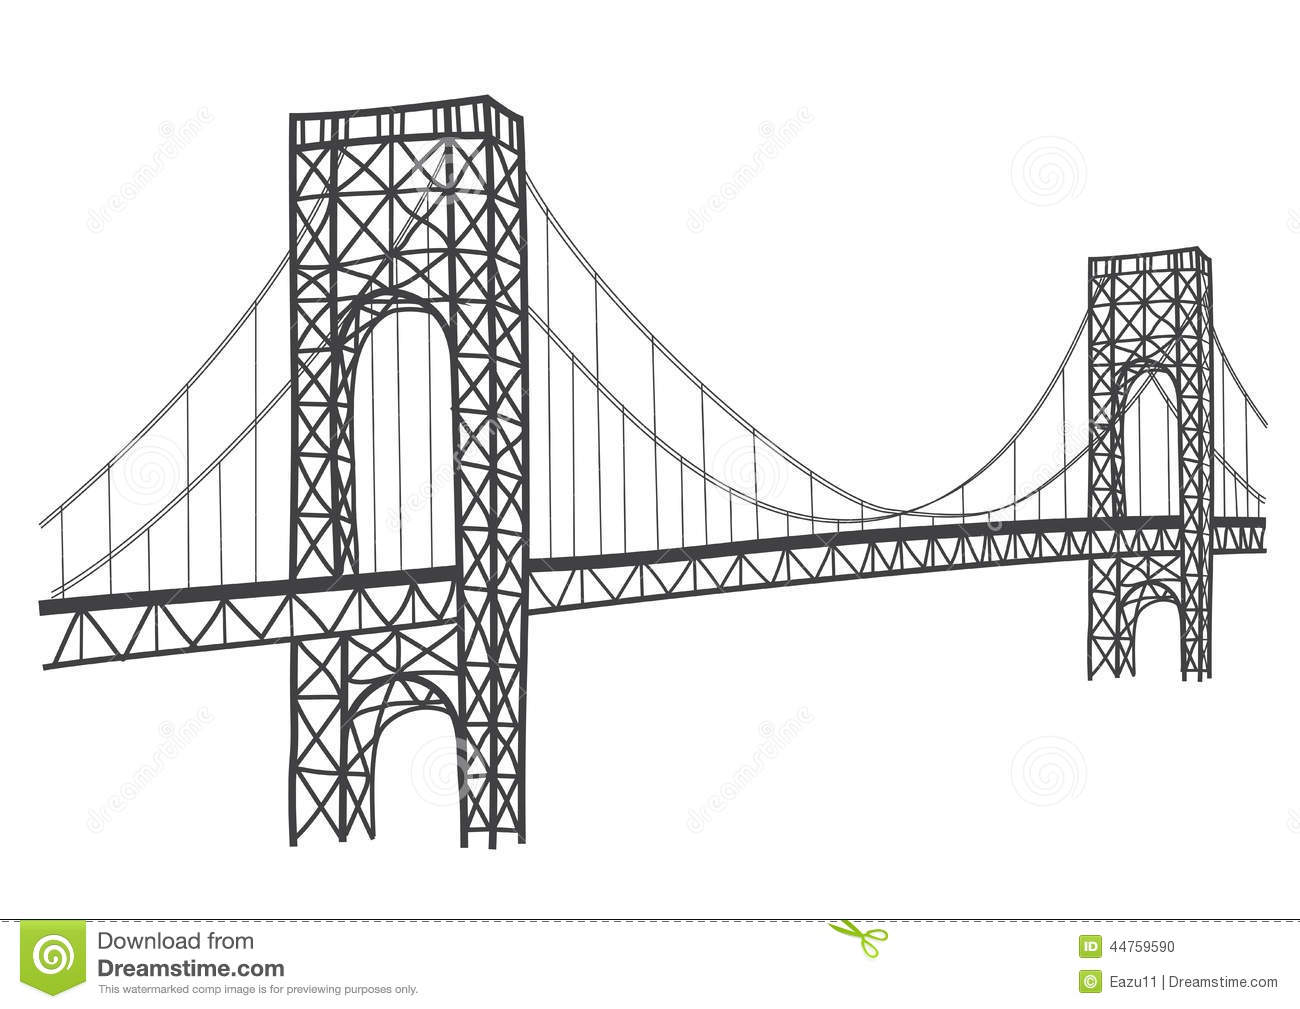 Drawn bridge landscape Free Images Art Clipart Panda